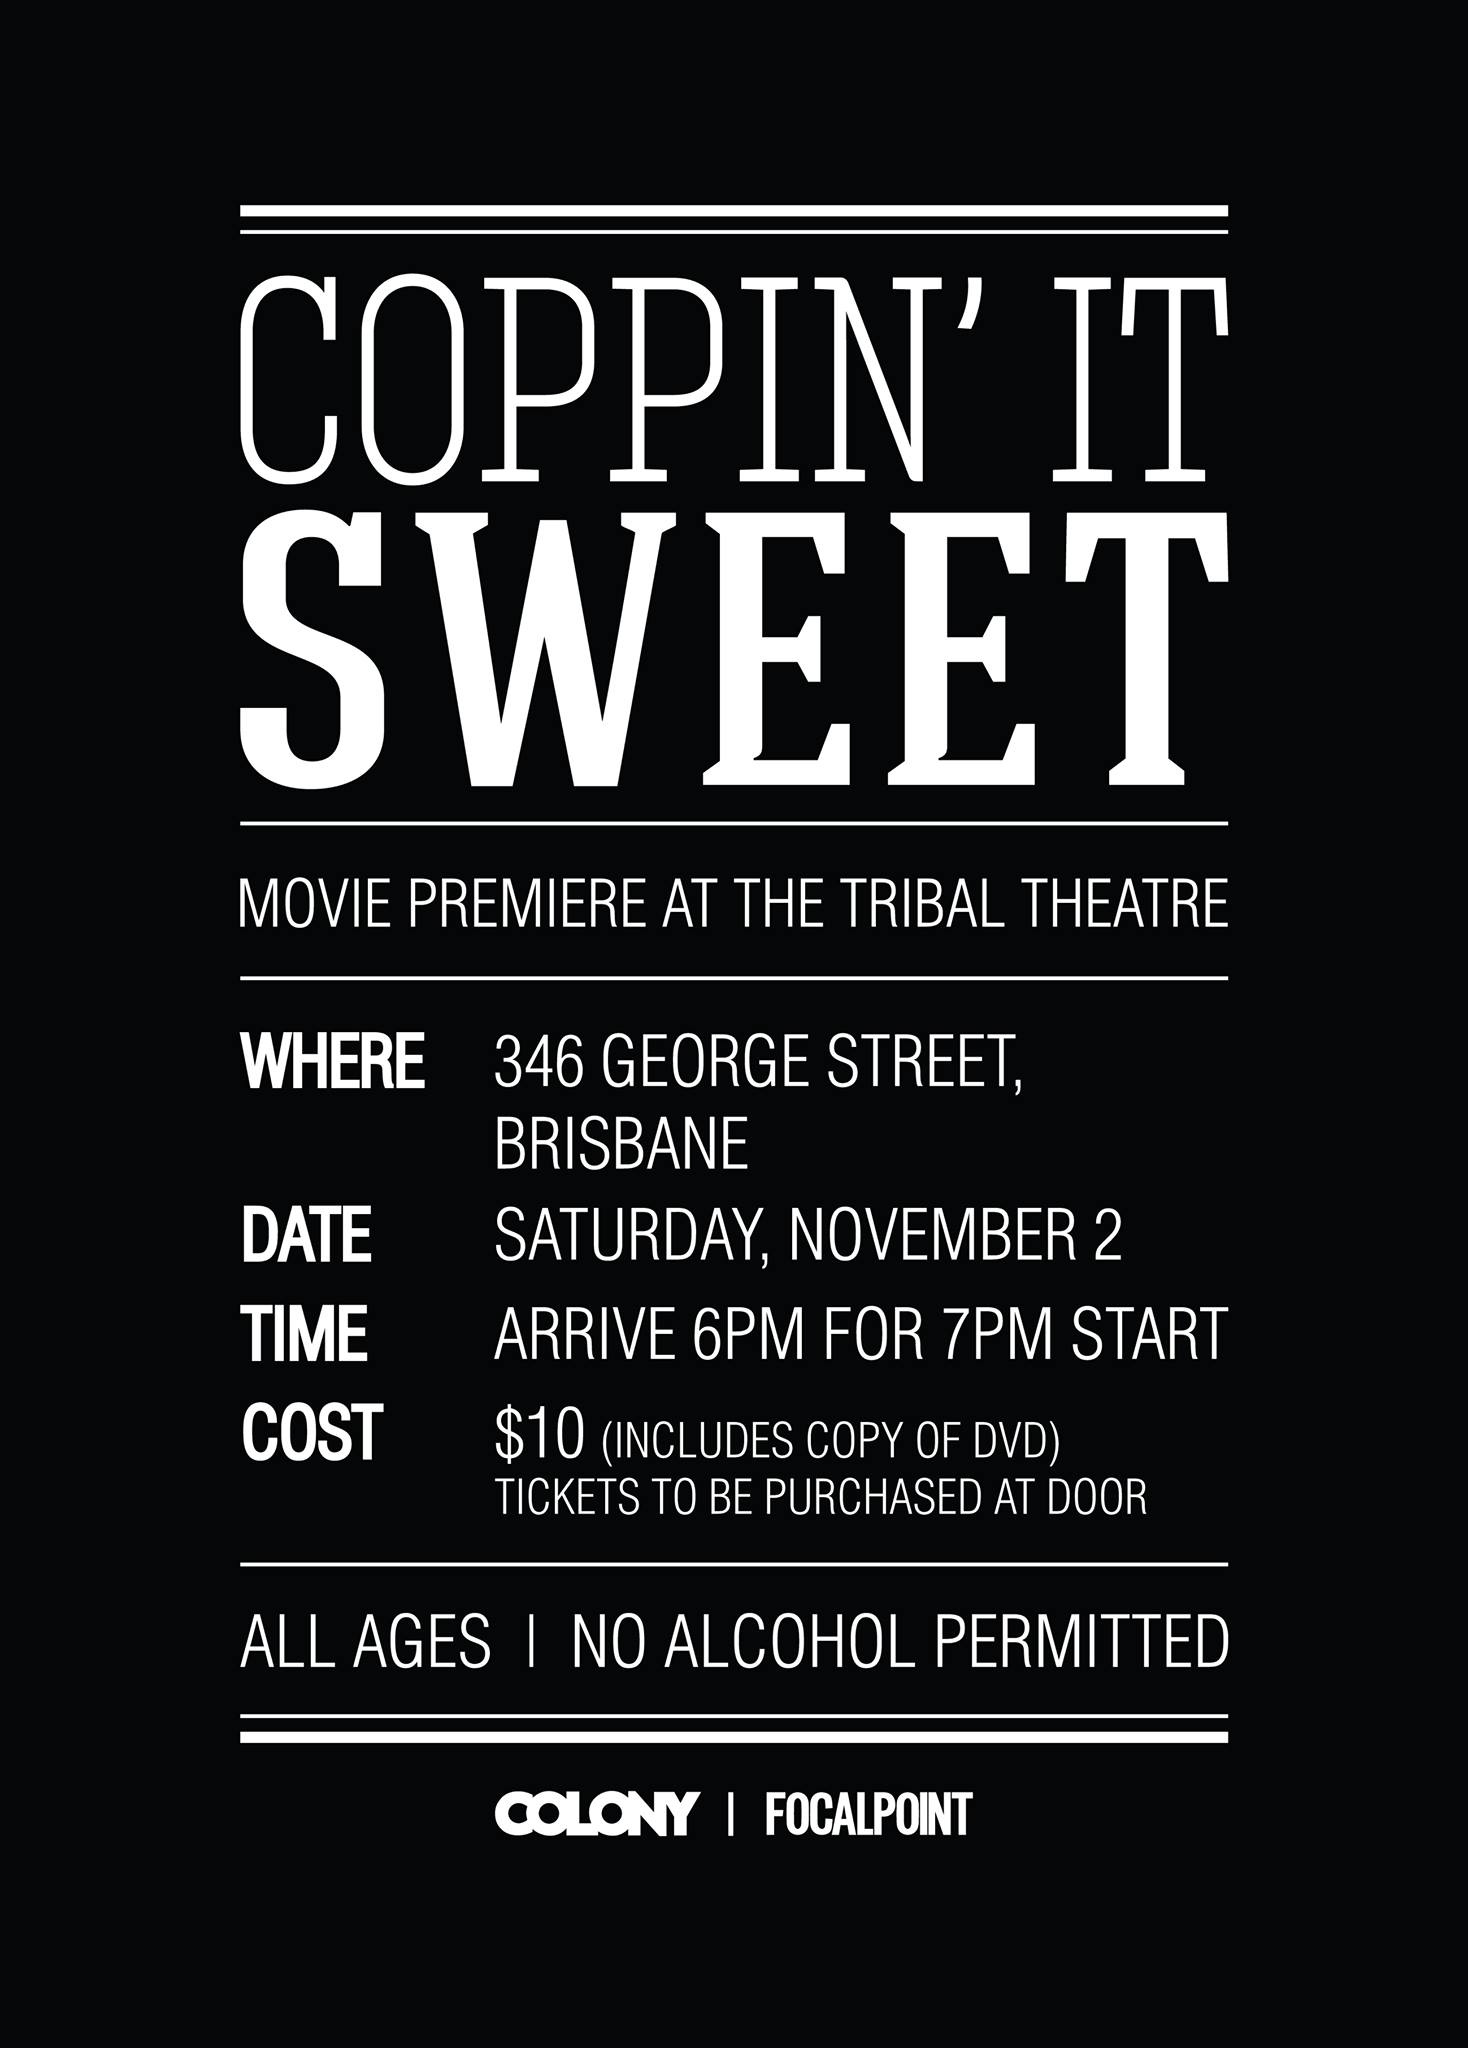 coppinsweet flyer